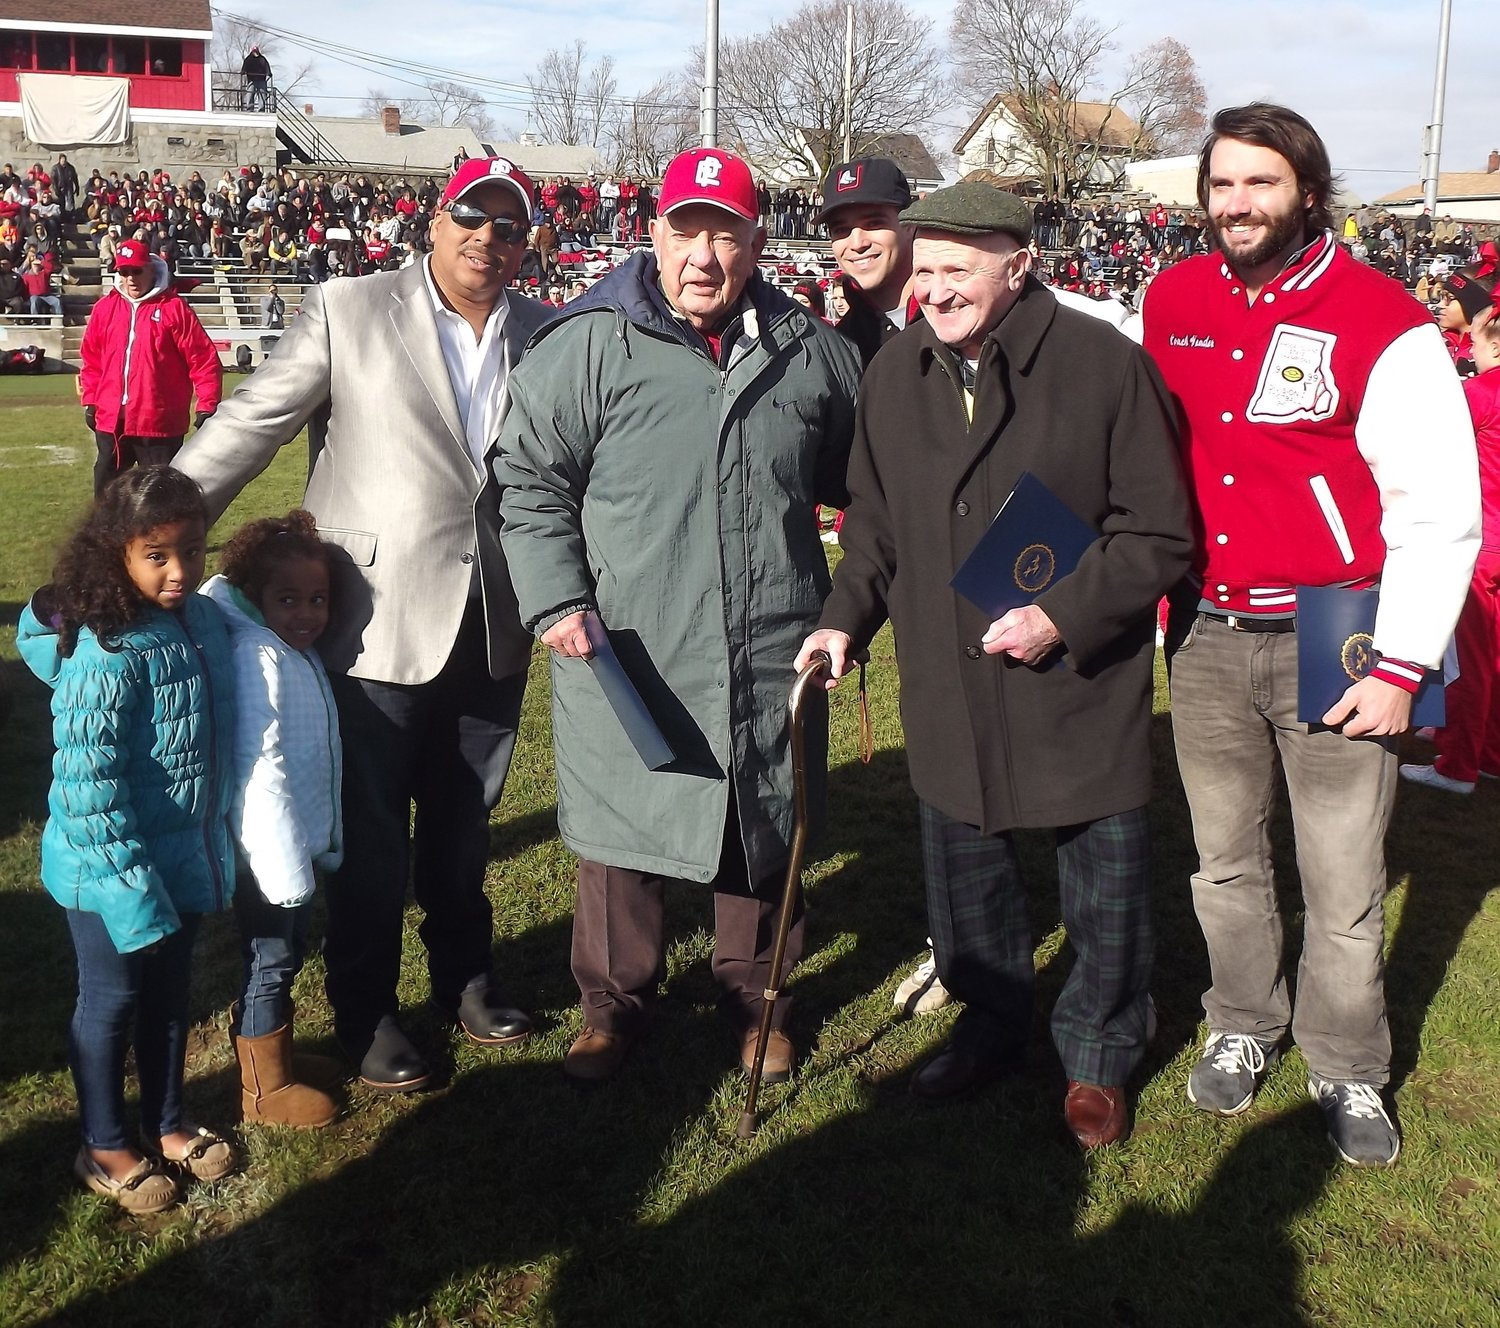 Representative Townies Matt Lopes, Bill Stringfellow, Jaime Silva, Jim Deffley and Joe Wahl were all honored on Thanksgiving in 2014 commemorating the 75th year of Pierce Stadium